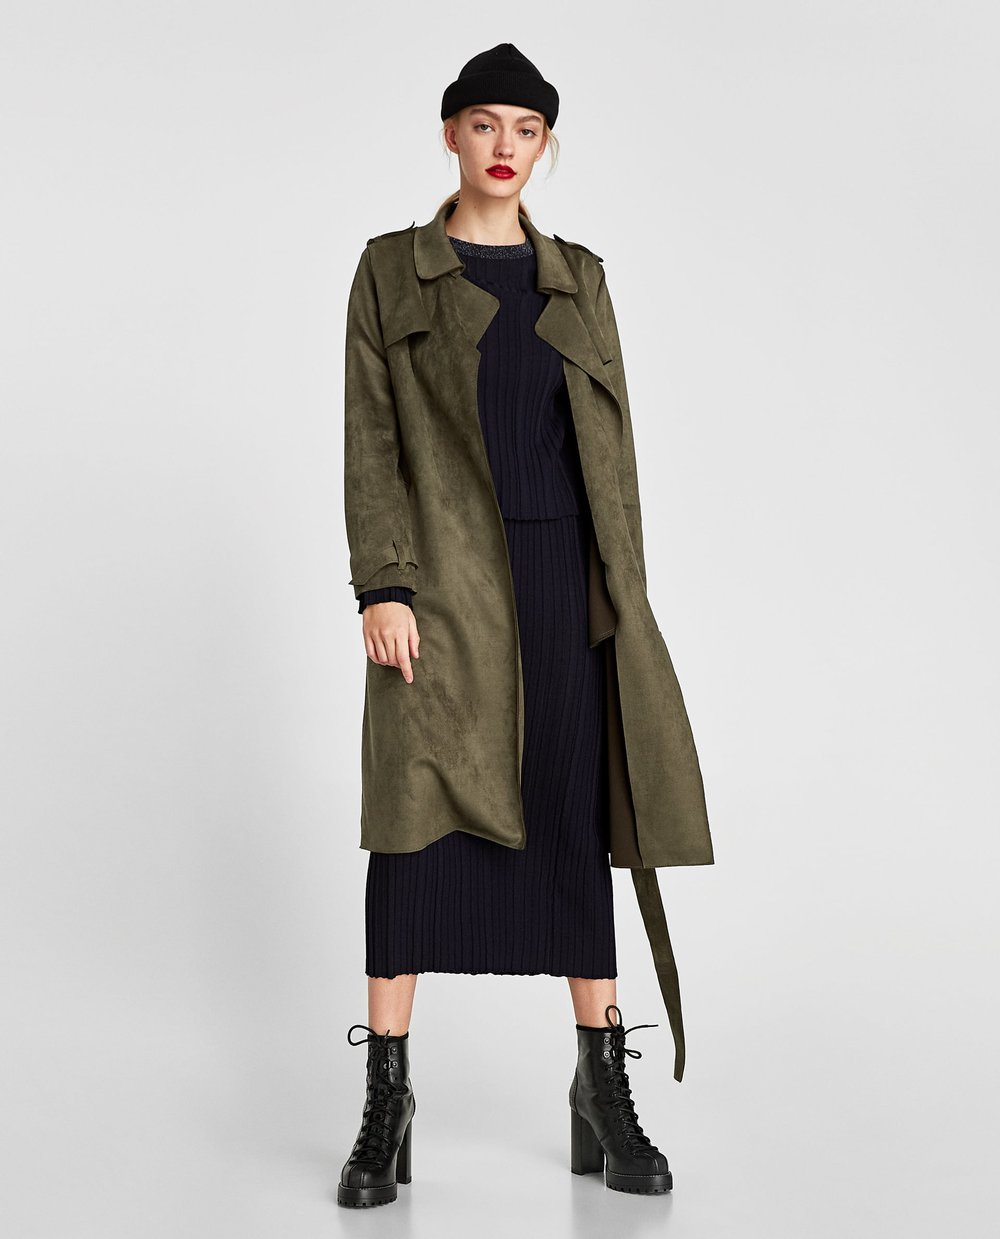 FAUX SUEDE TRENCH COAT. Zara. $89.